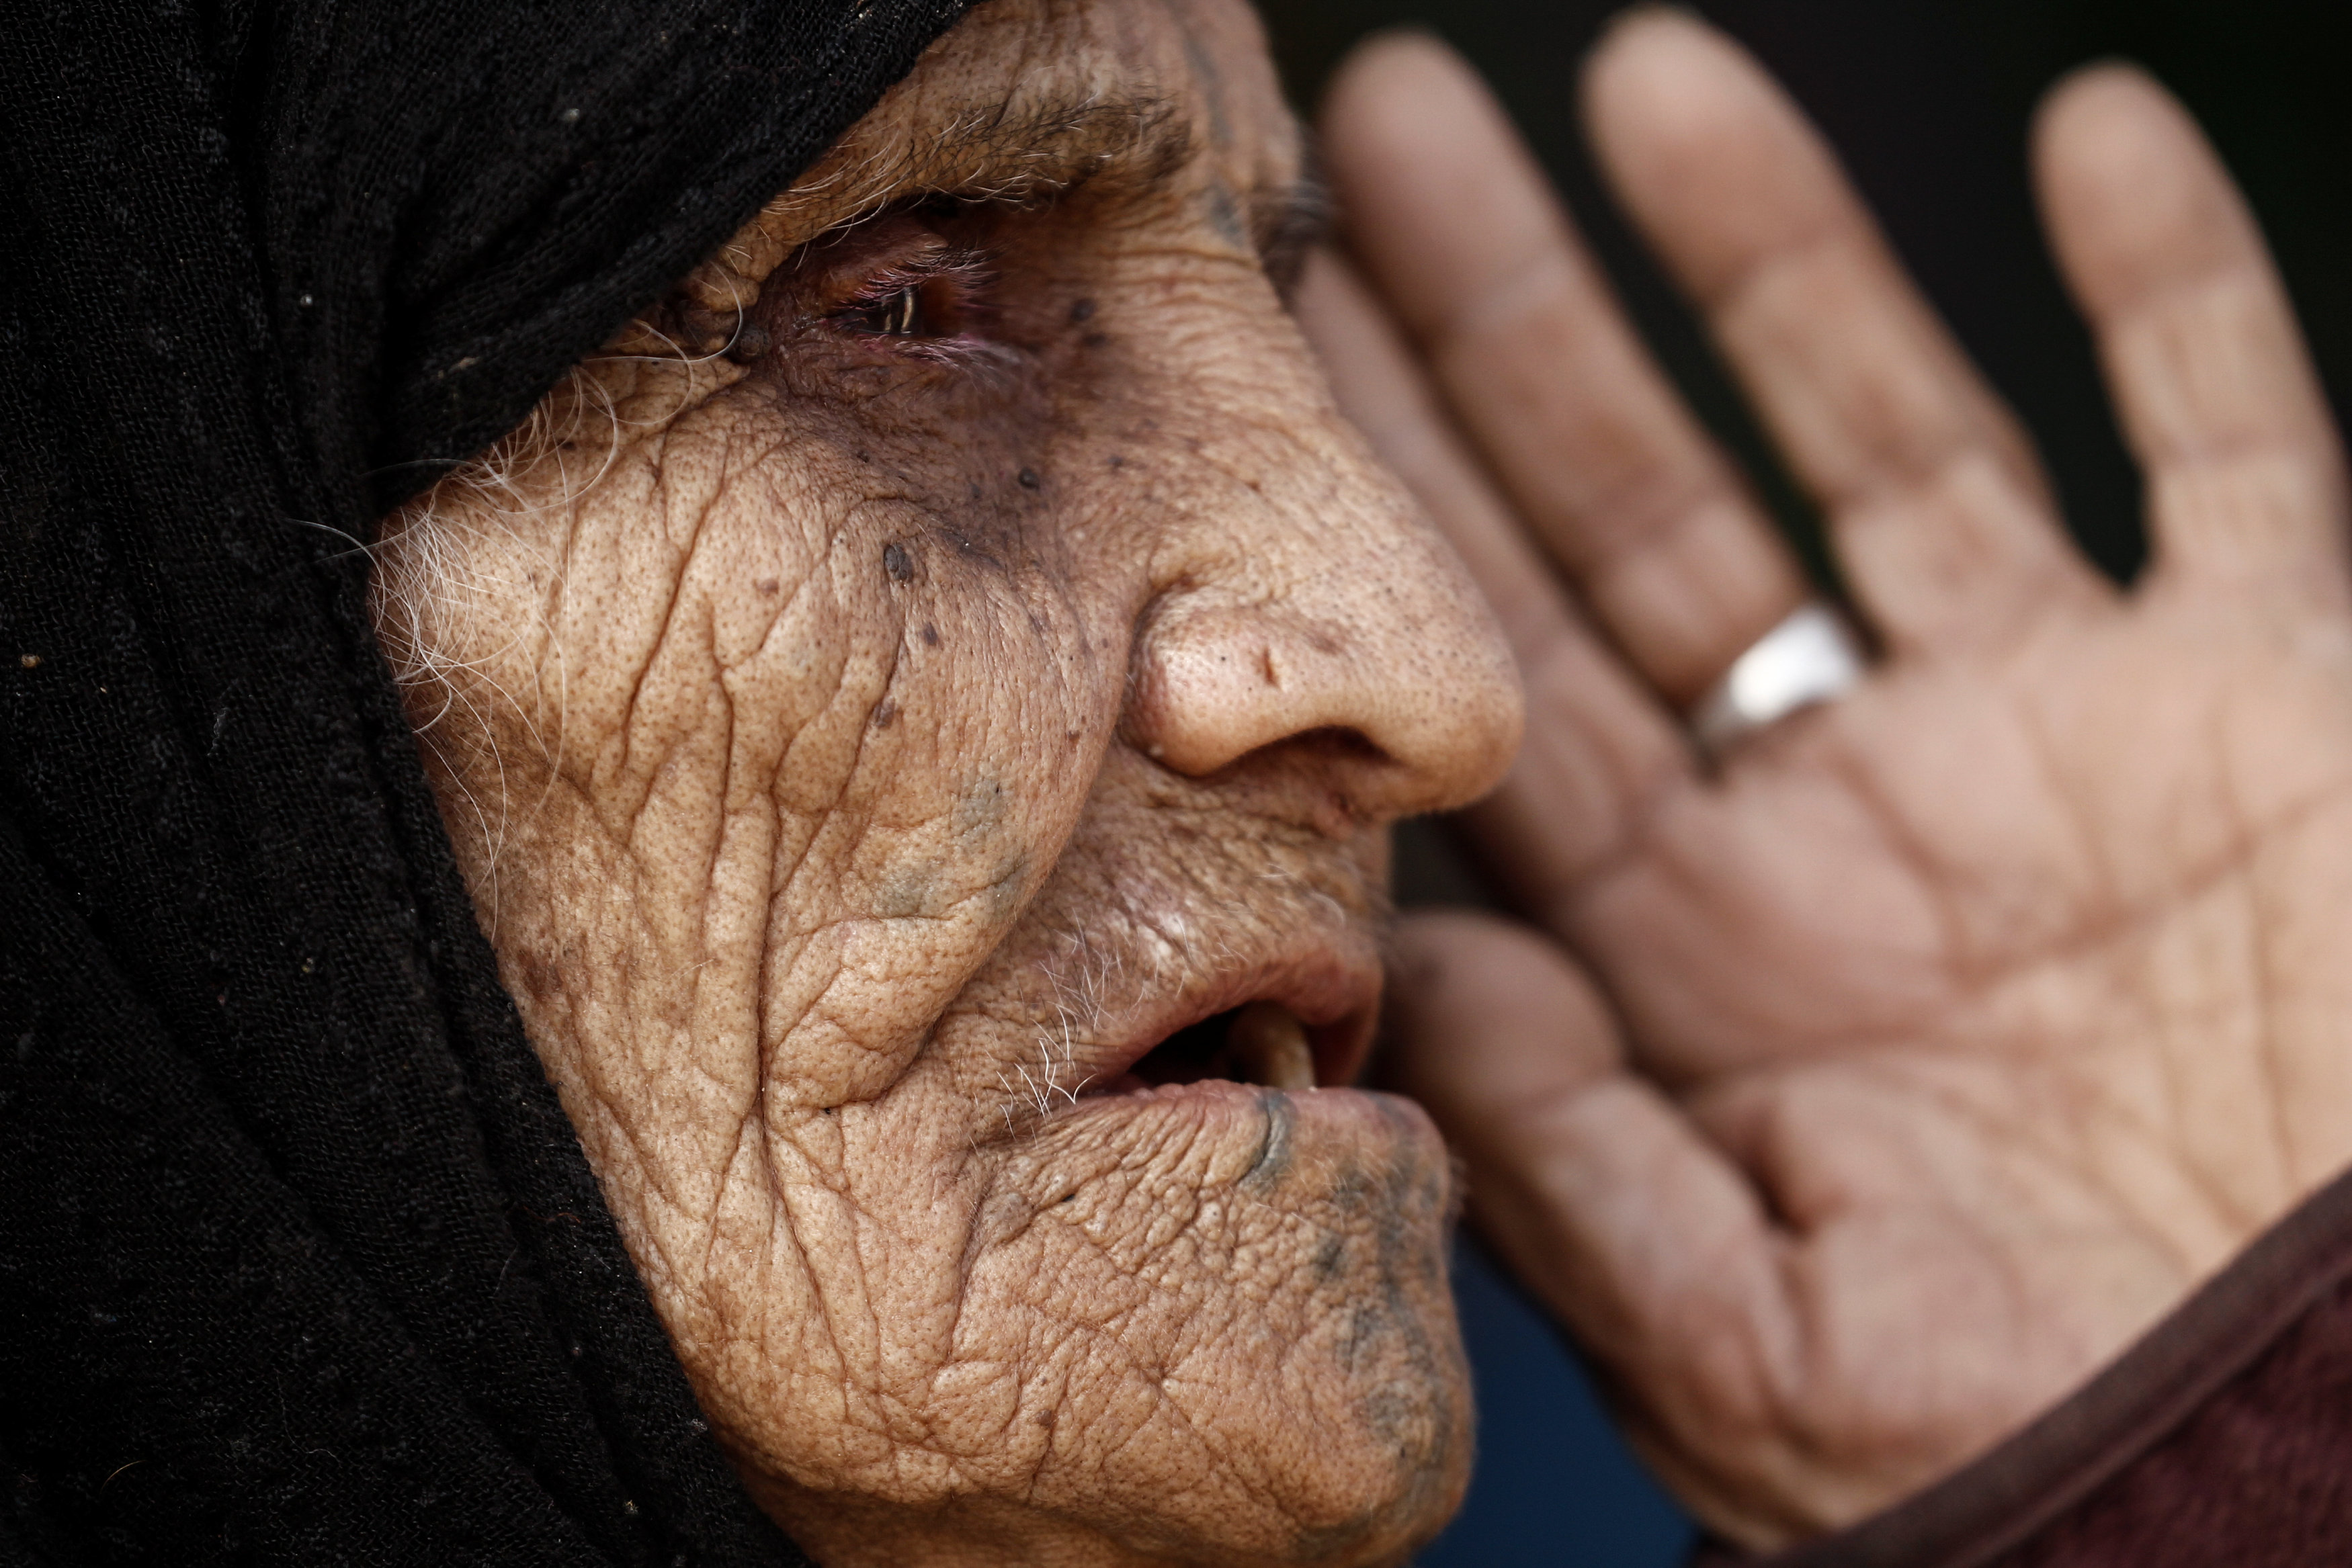 Khatla Ali Abdullah, 90, who recently fled her house in Al Mamoun district speaks with a Reuters journalist as she sits at her tent in Hammam al Alil camp, while Iraqi forces battle with Islamic State militants, in western Mosul, Iraq March 1, 2017. Credit: Zohra Bensemra/Reuters